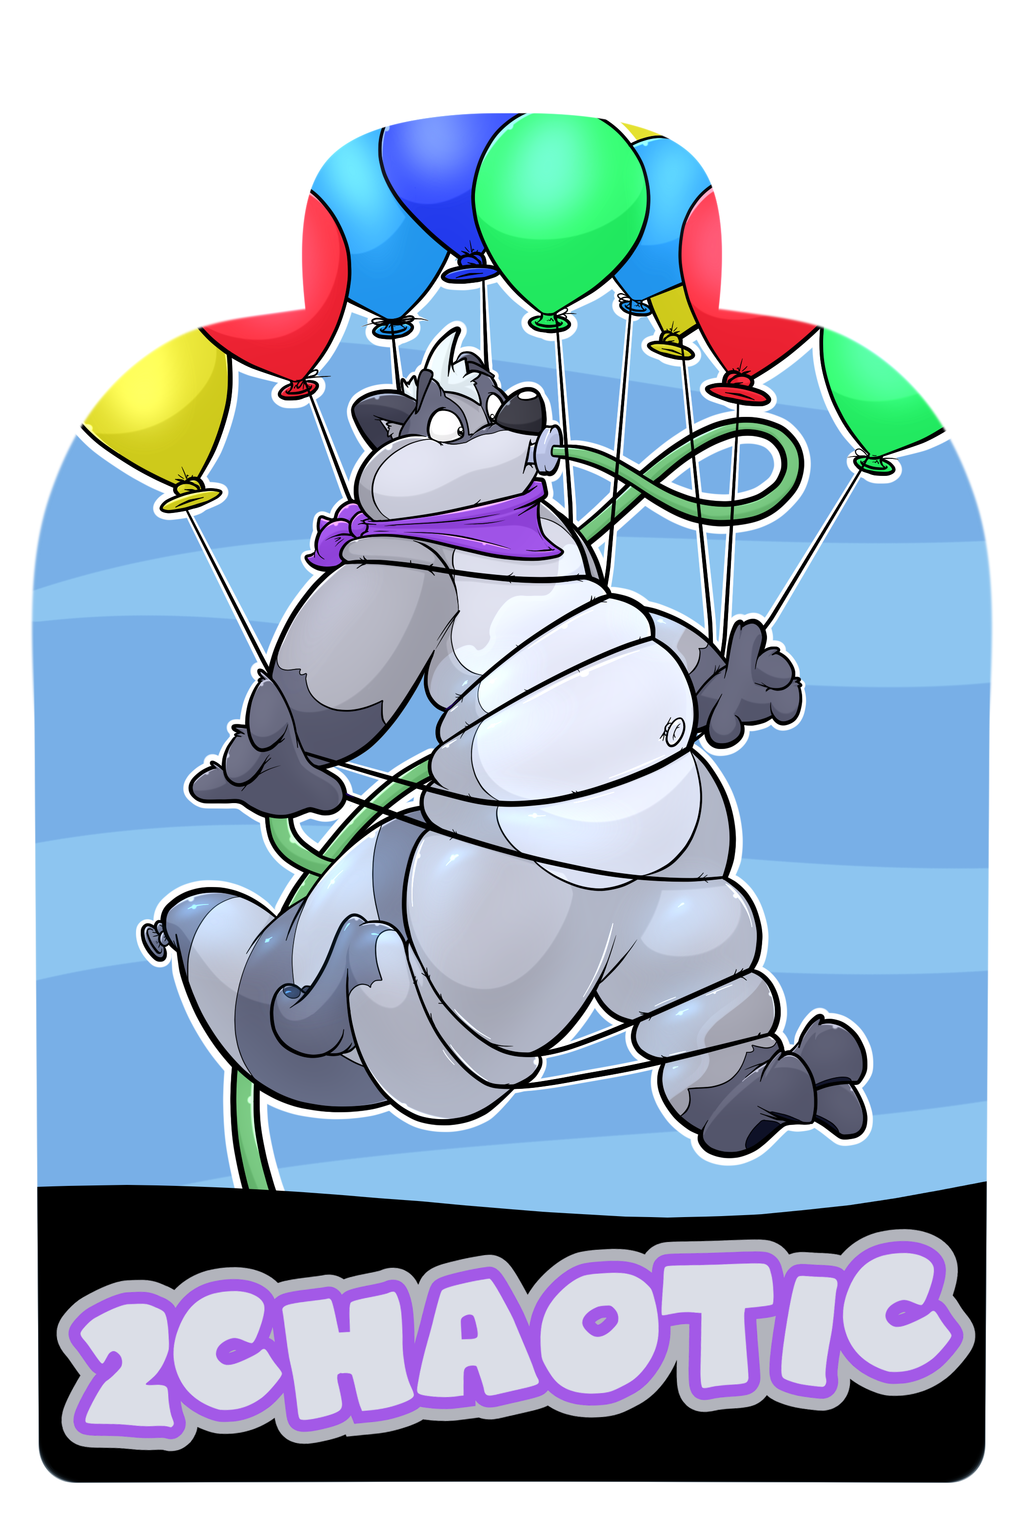 Midwest Furfest 2017 Badges - 2Chaotic